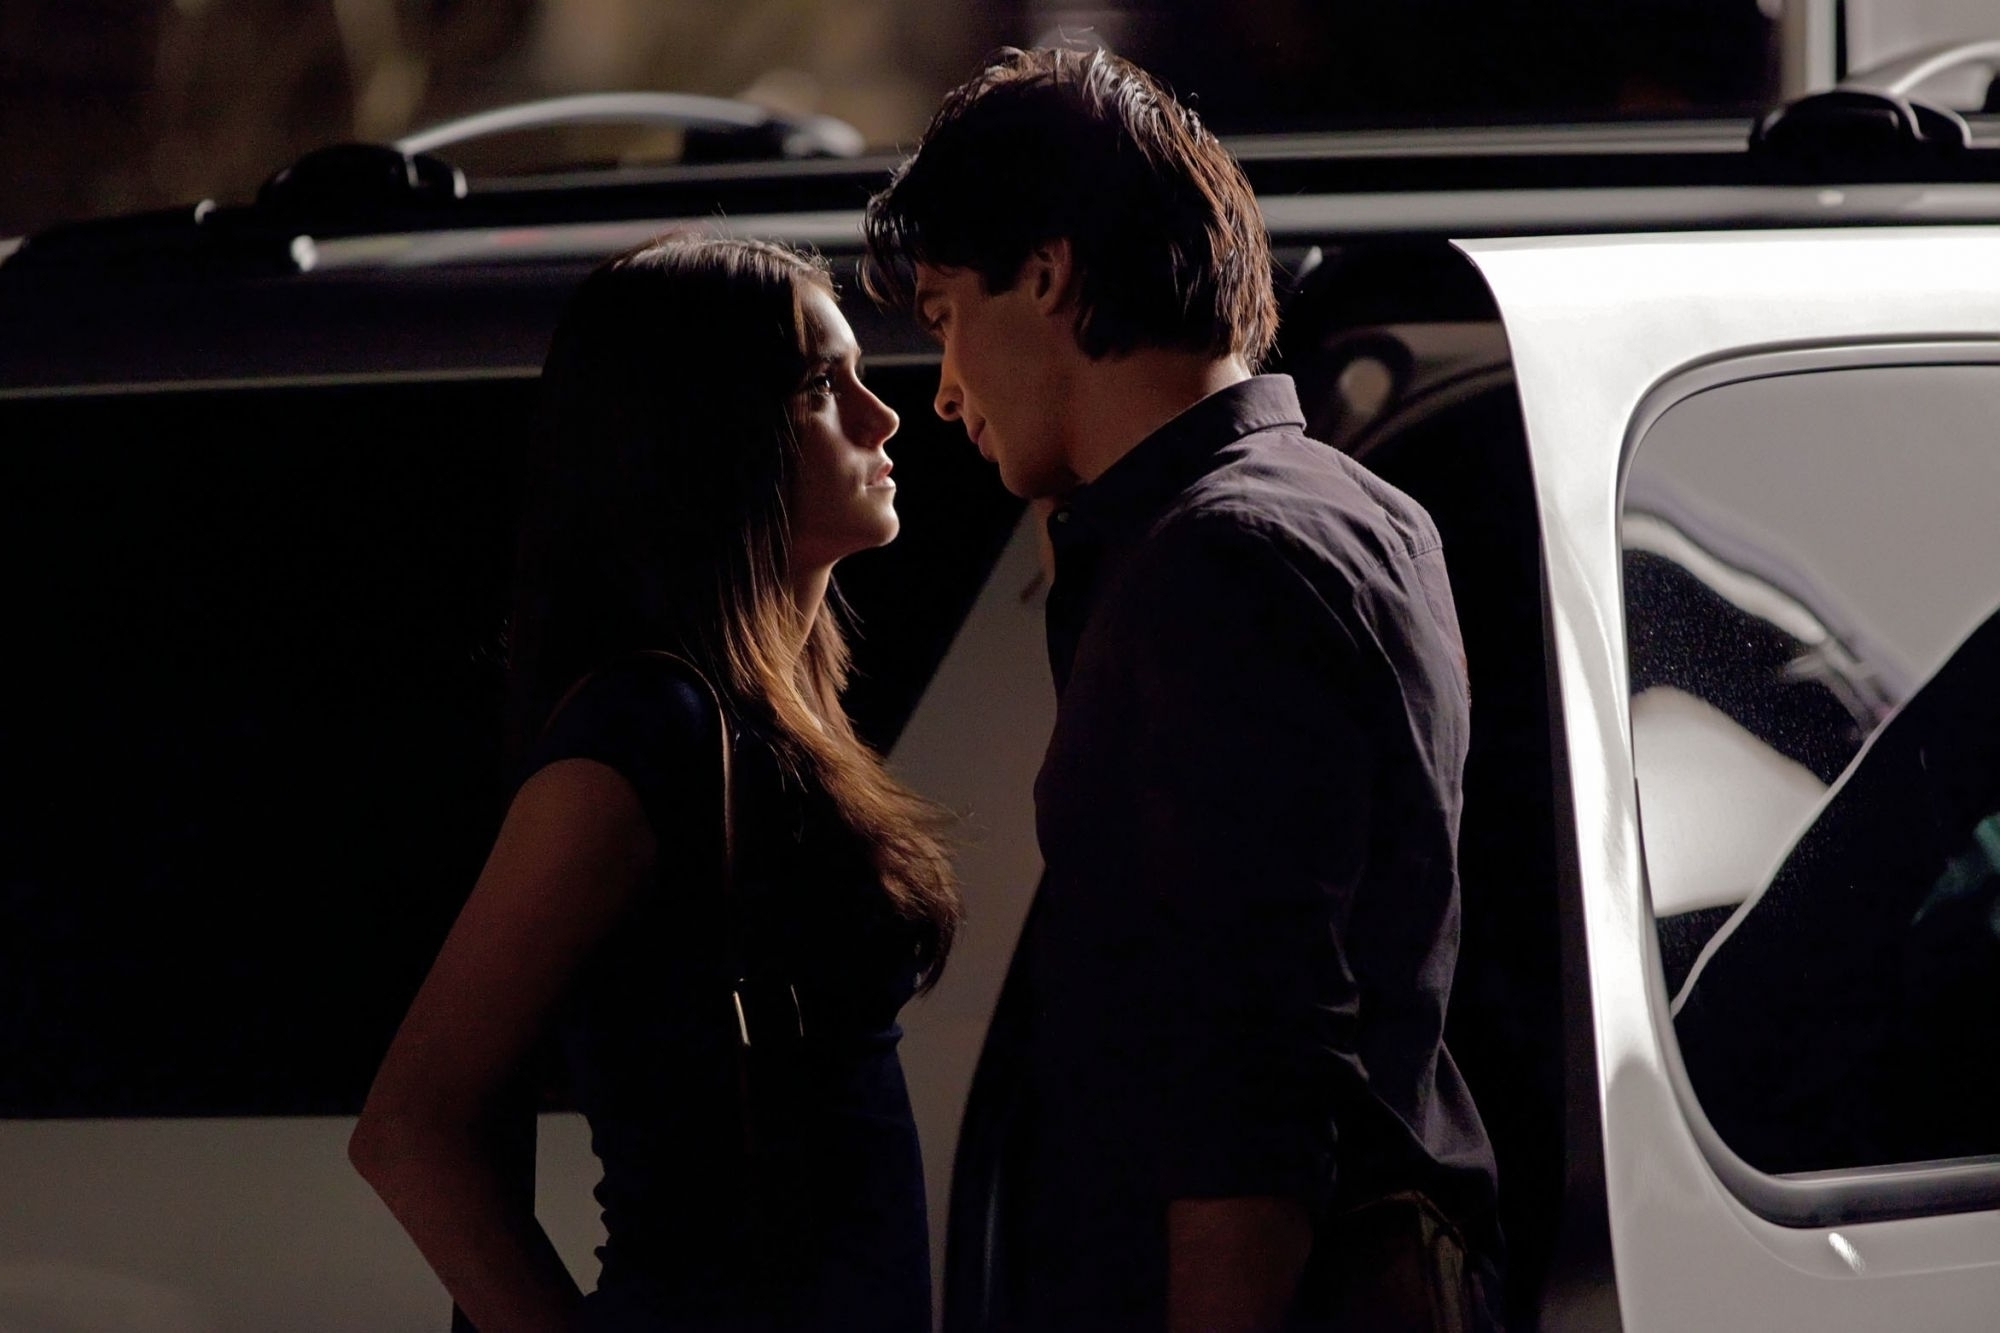 http://images4.fanpop.com/image/photos/15300000/Bad-Moon-Rising-2x03-the-vampire-diaries-tv-show-15391320-2000-1333.jpg